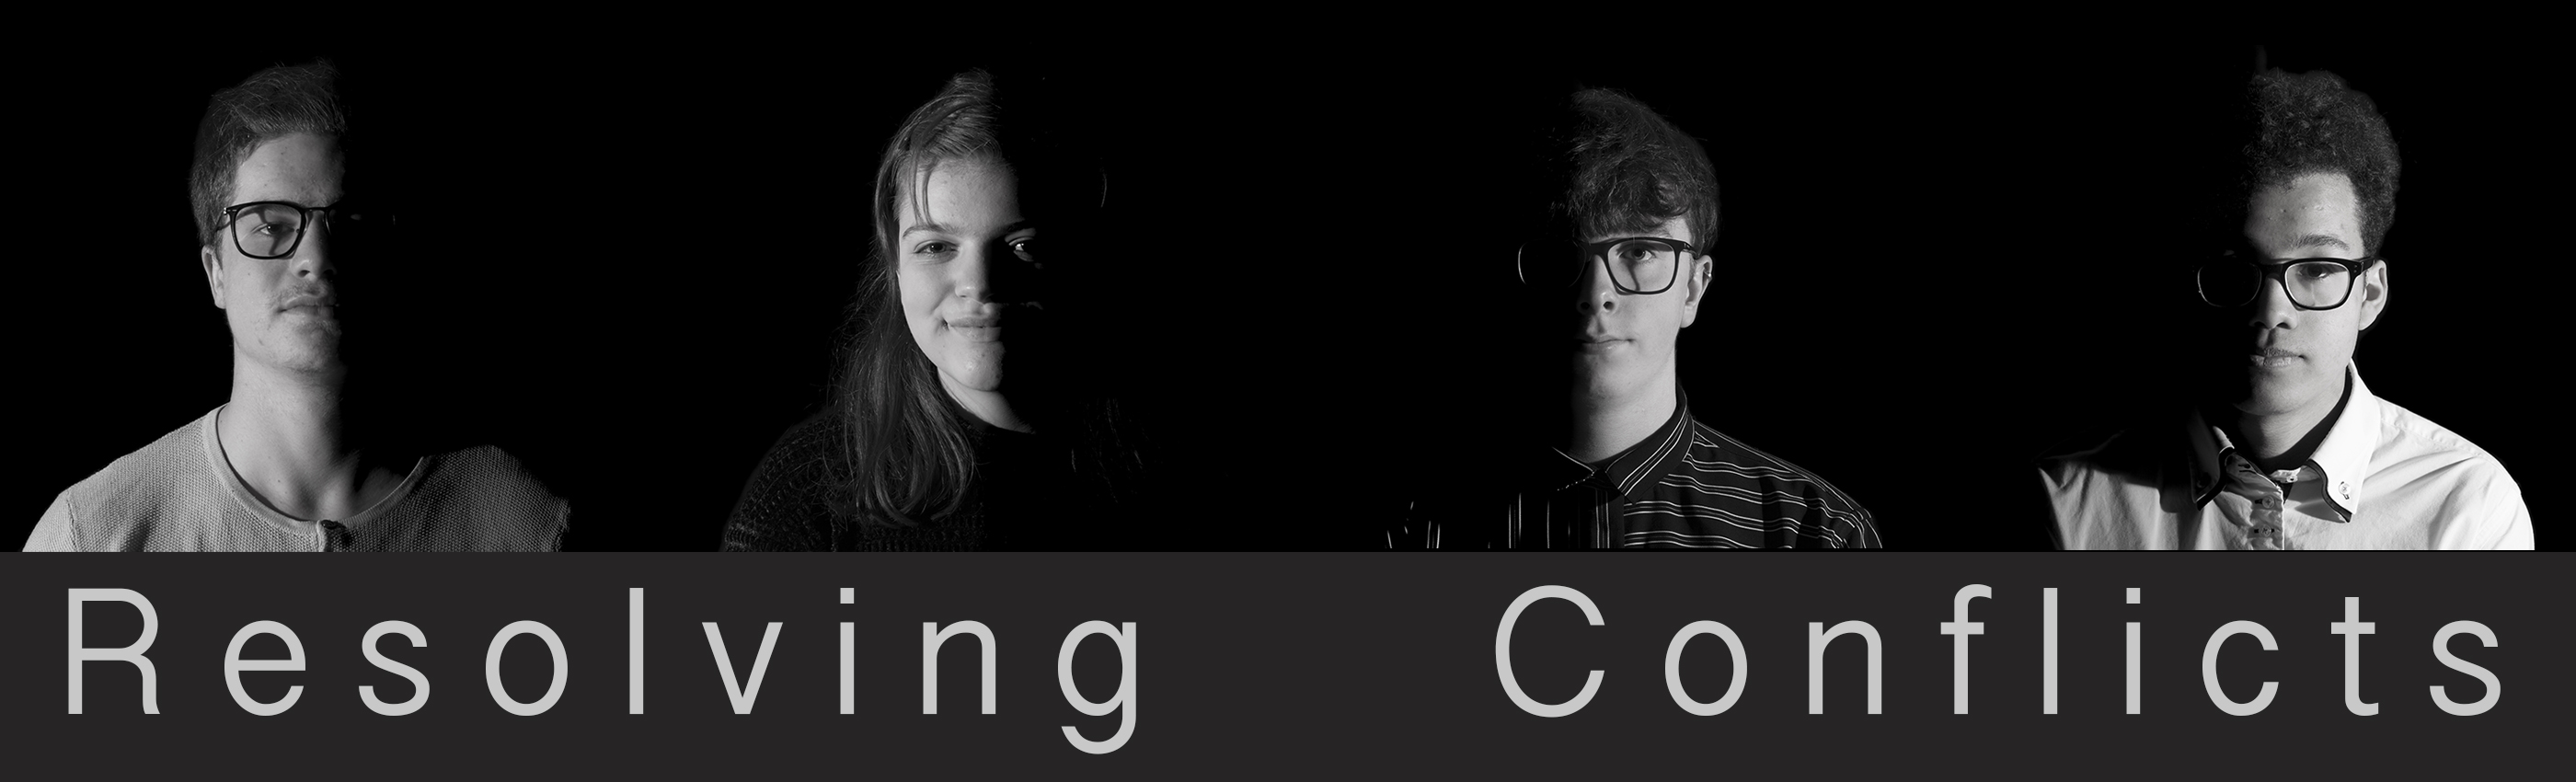 Resolving conflicts banner